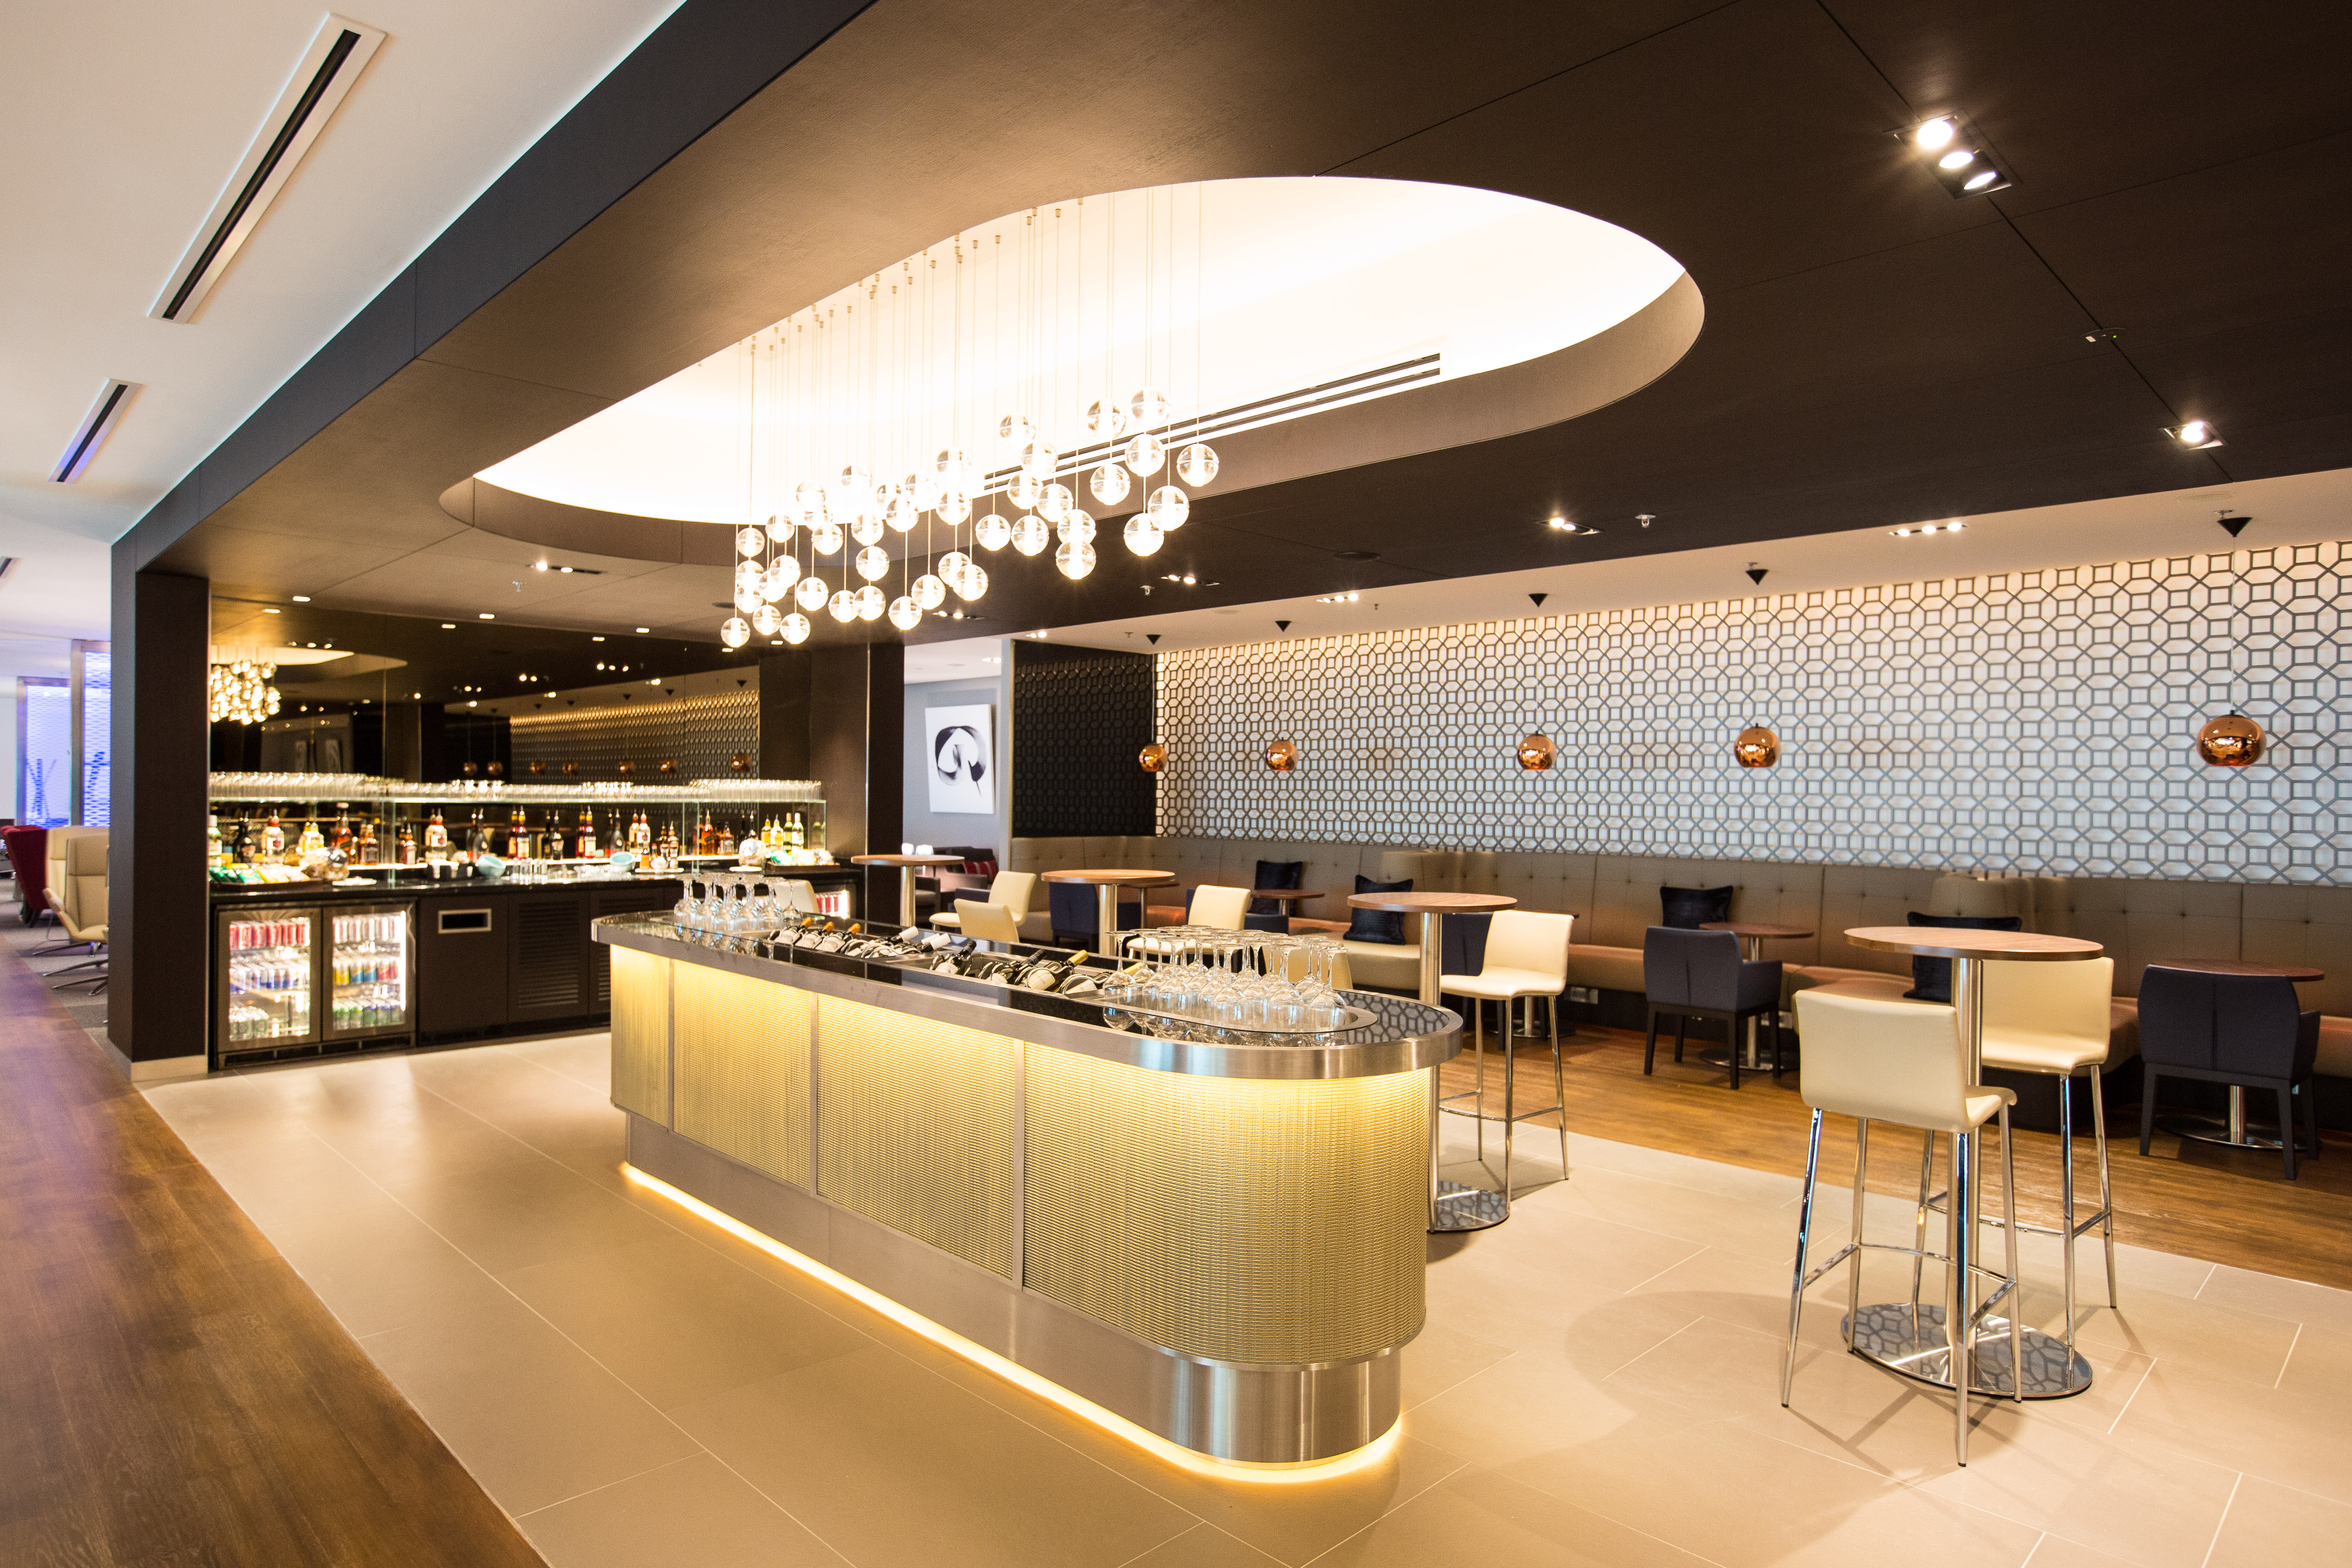 ... this opening marks the eighth Lounge that Graven has designed for British Airways in locations ranging from Edinburgh to Washington Dulles. & British Airways Opens Latest Galleries Lounge in Singapore Designed ...